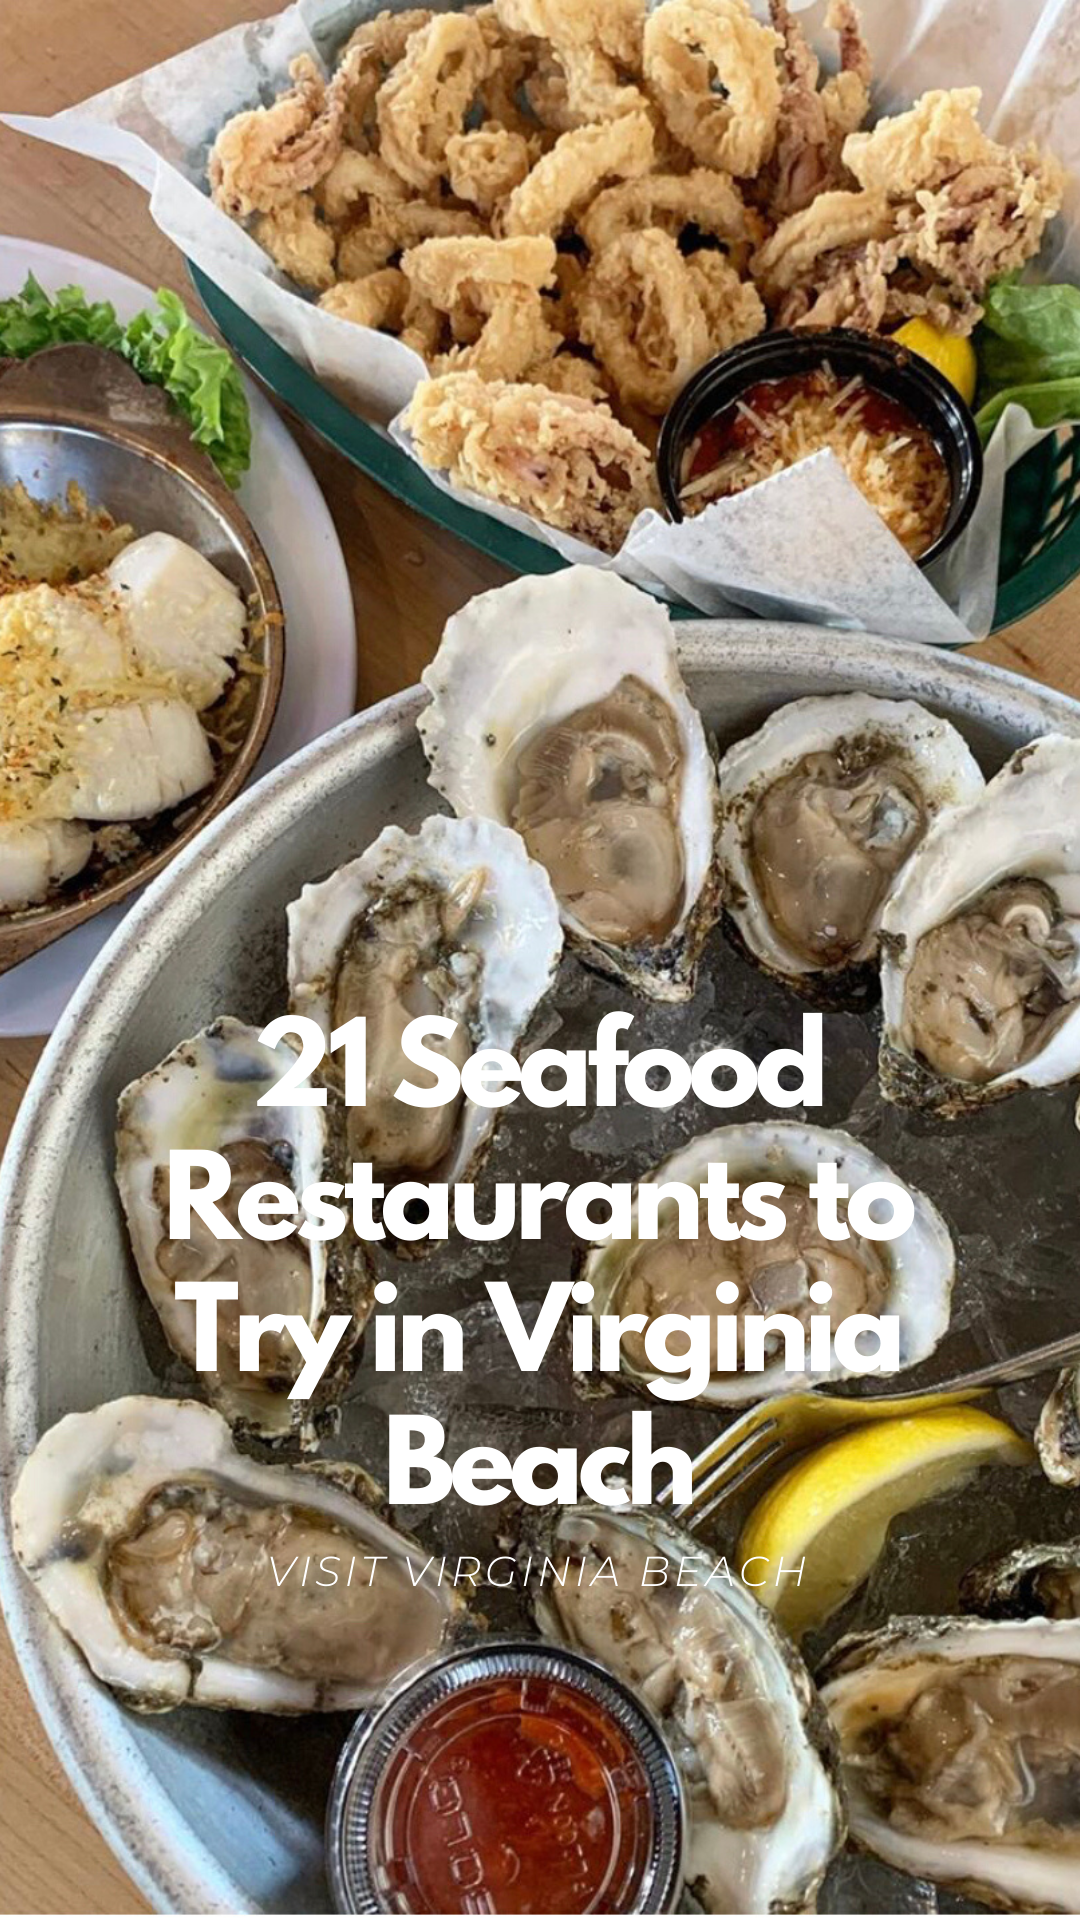 21 Seafood Restaurants To Try In Virginia Beach In 2020 Seafood Restaurant Crockpot Recipes Slow Cooker Chex Mix Recipes